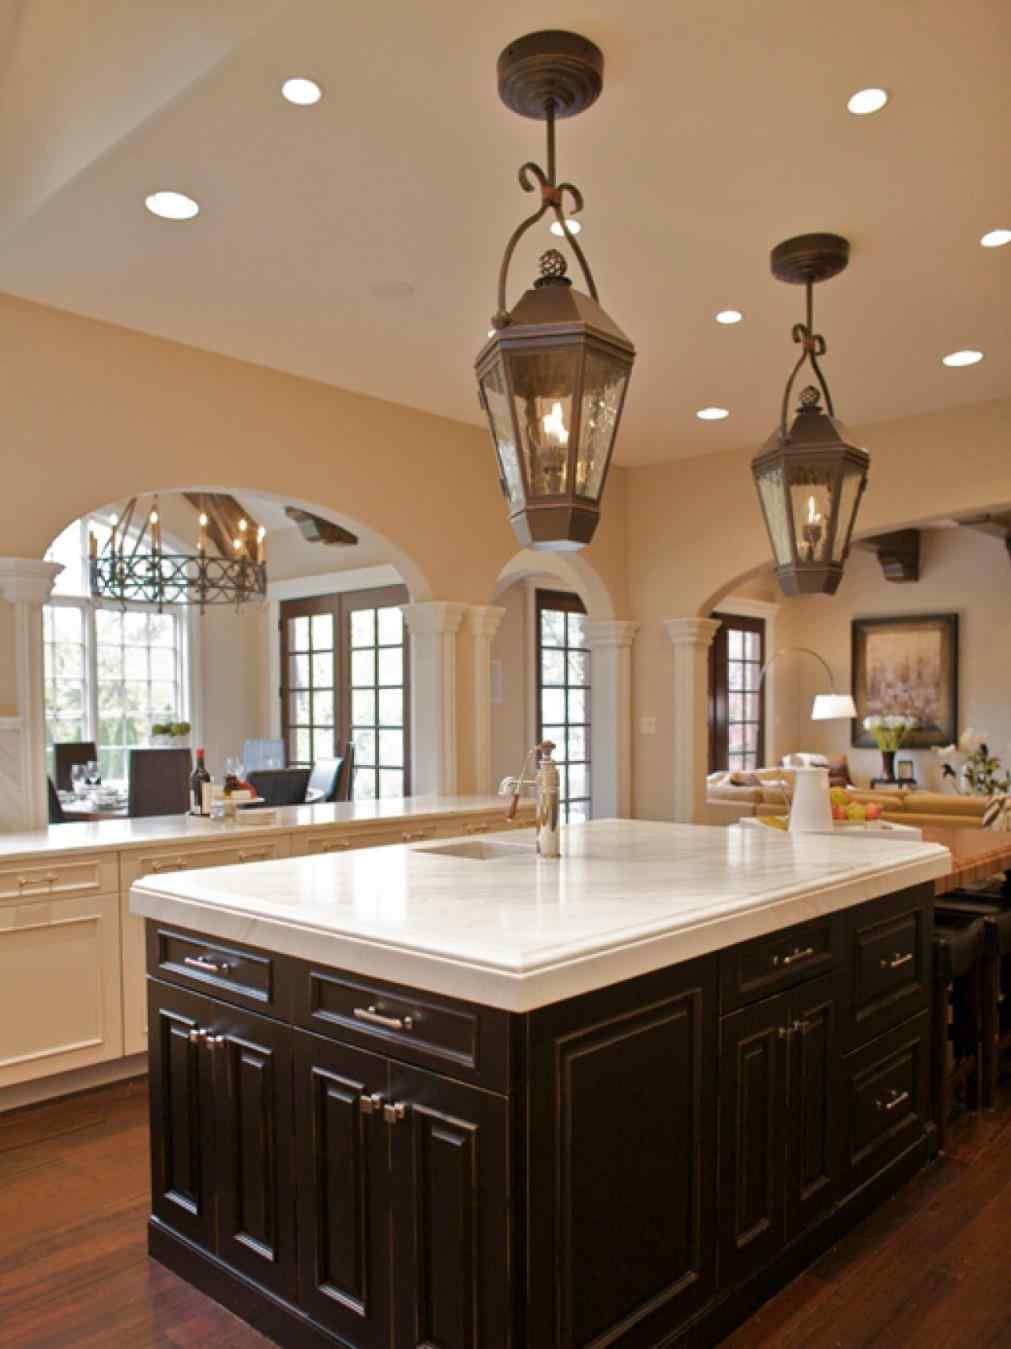 15 Best Kitchen Island Lighting Ideas To Inspire You